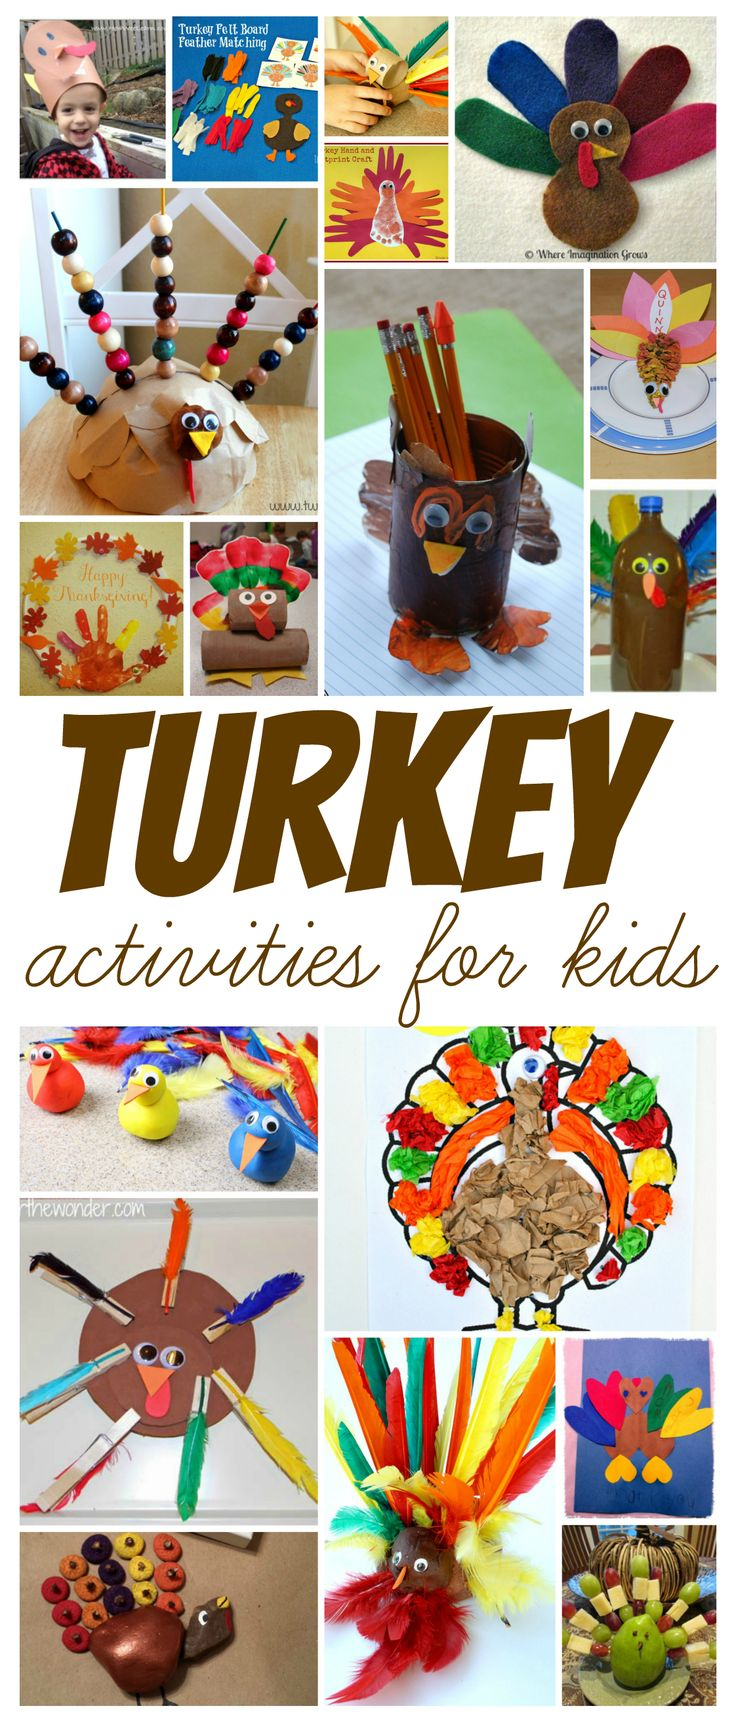 15+ Thanksgiving Turkey Activities for Kids